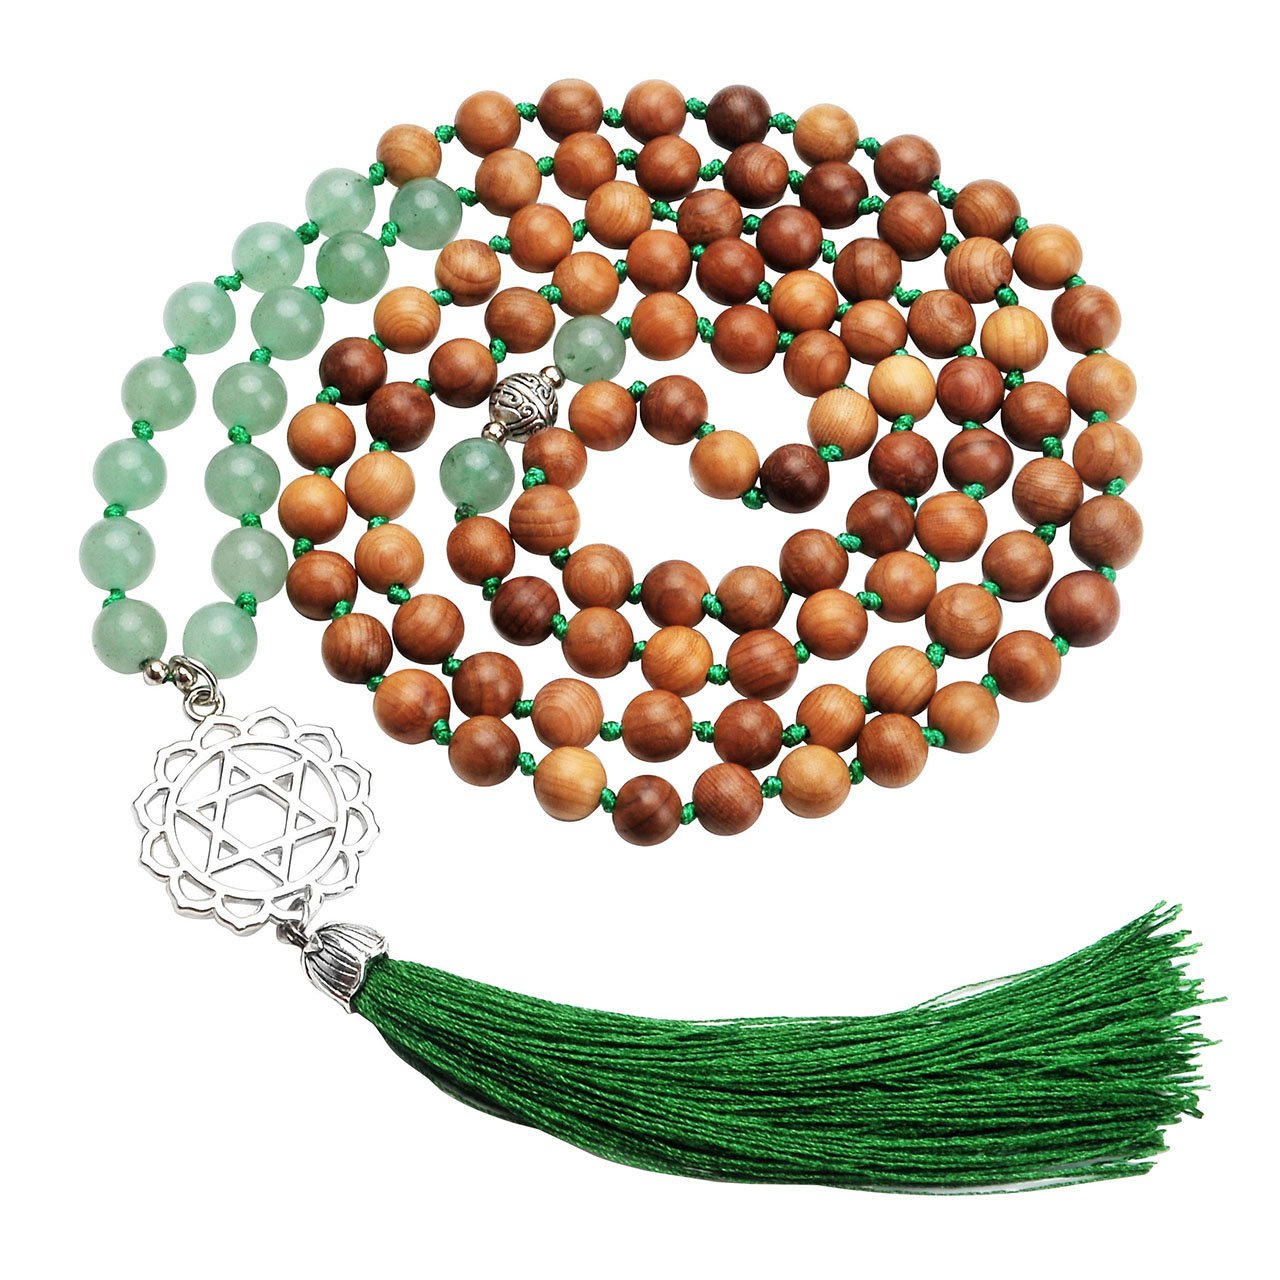 Top Plaza 108 Buddha Prayer Wood Beads Tibetan Mala Multilayer 7 Chakra Reiki Healing Energy Crystals Gemstones Loops Bracelet Necklace W/Chakra Tassel Charm(Green Aventurine)